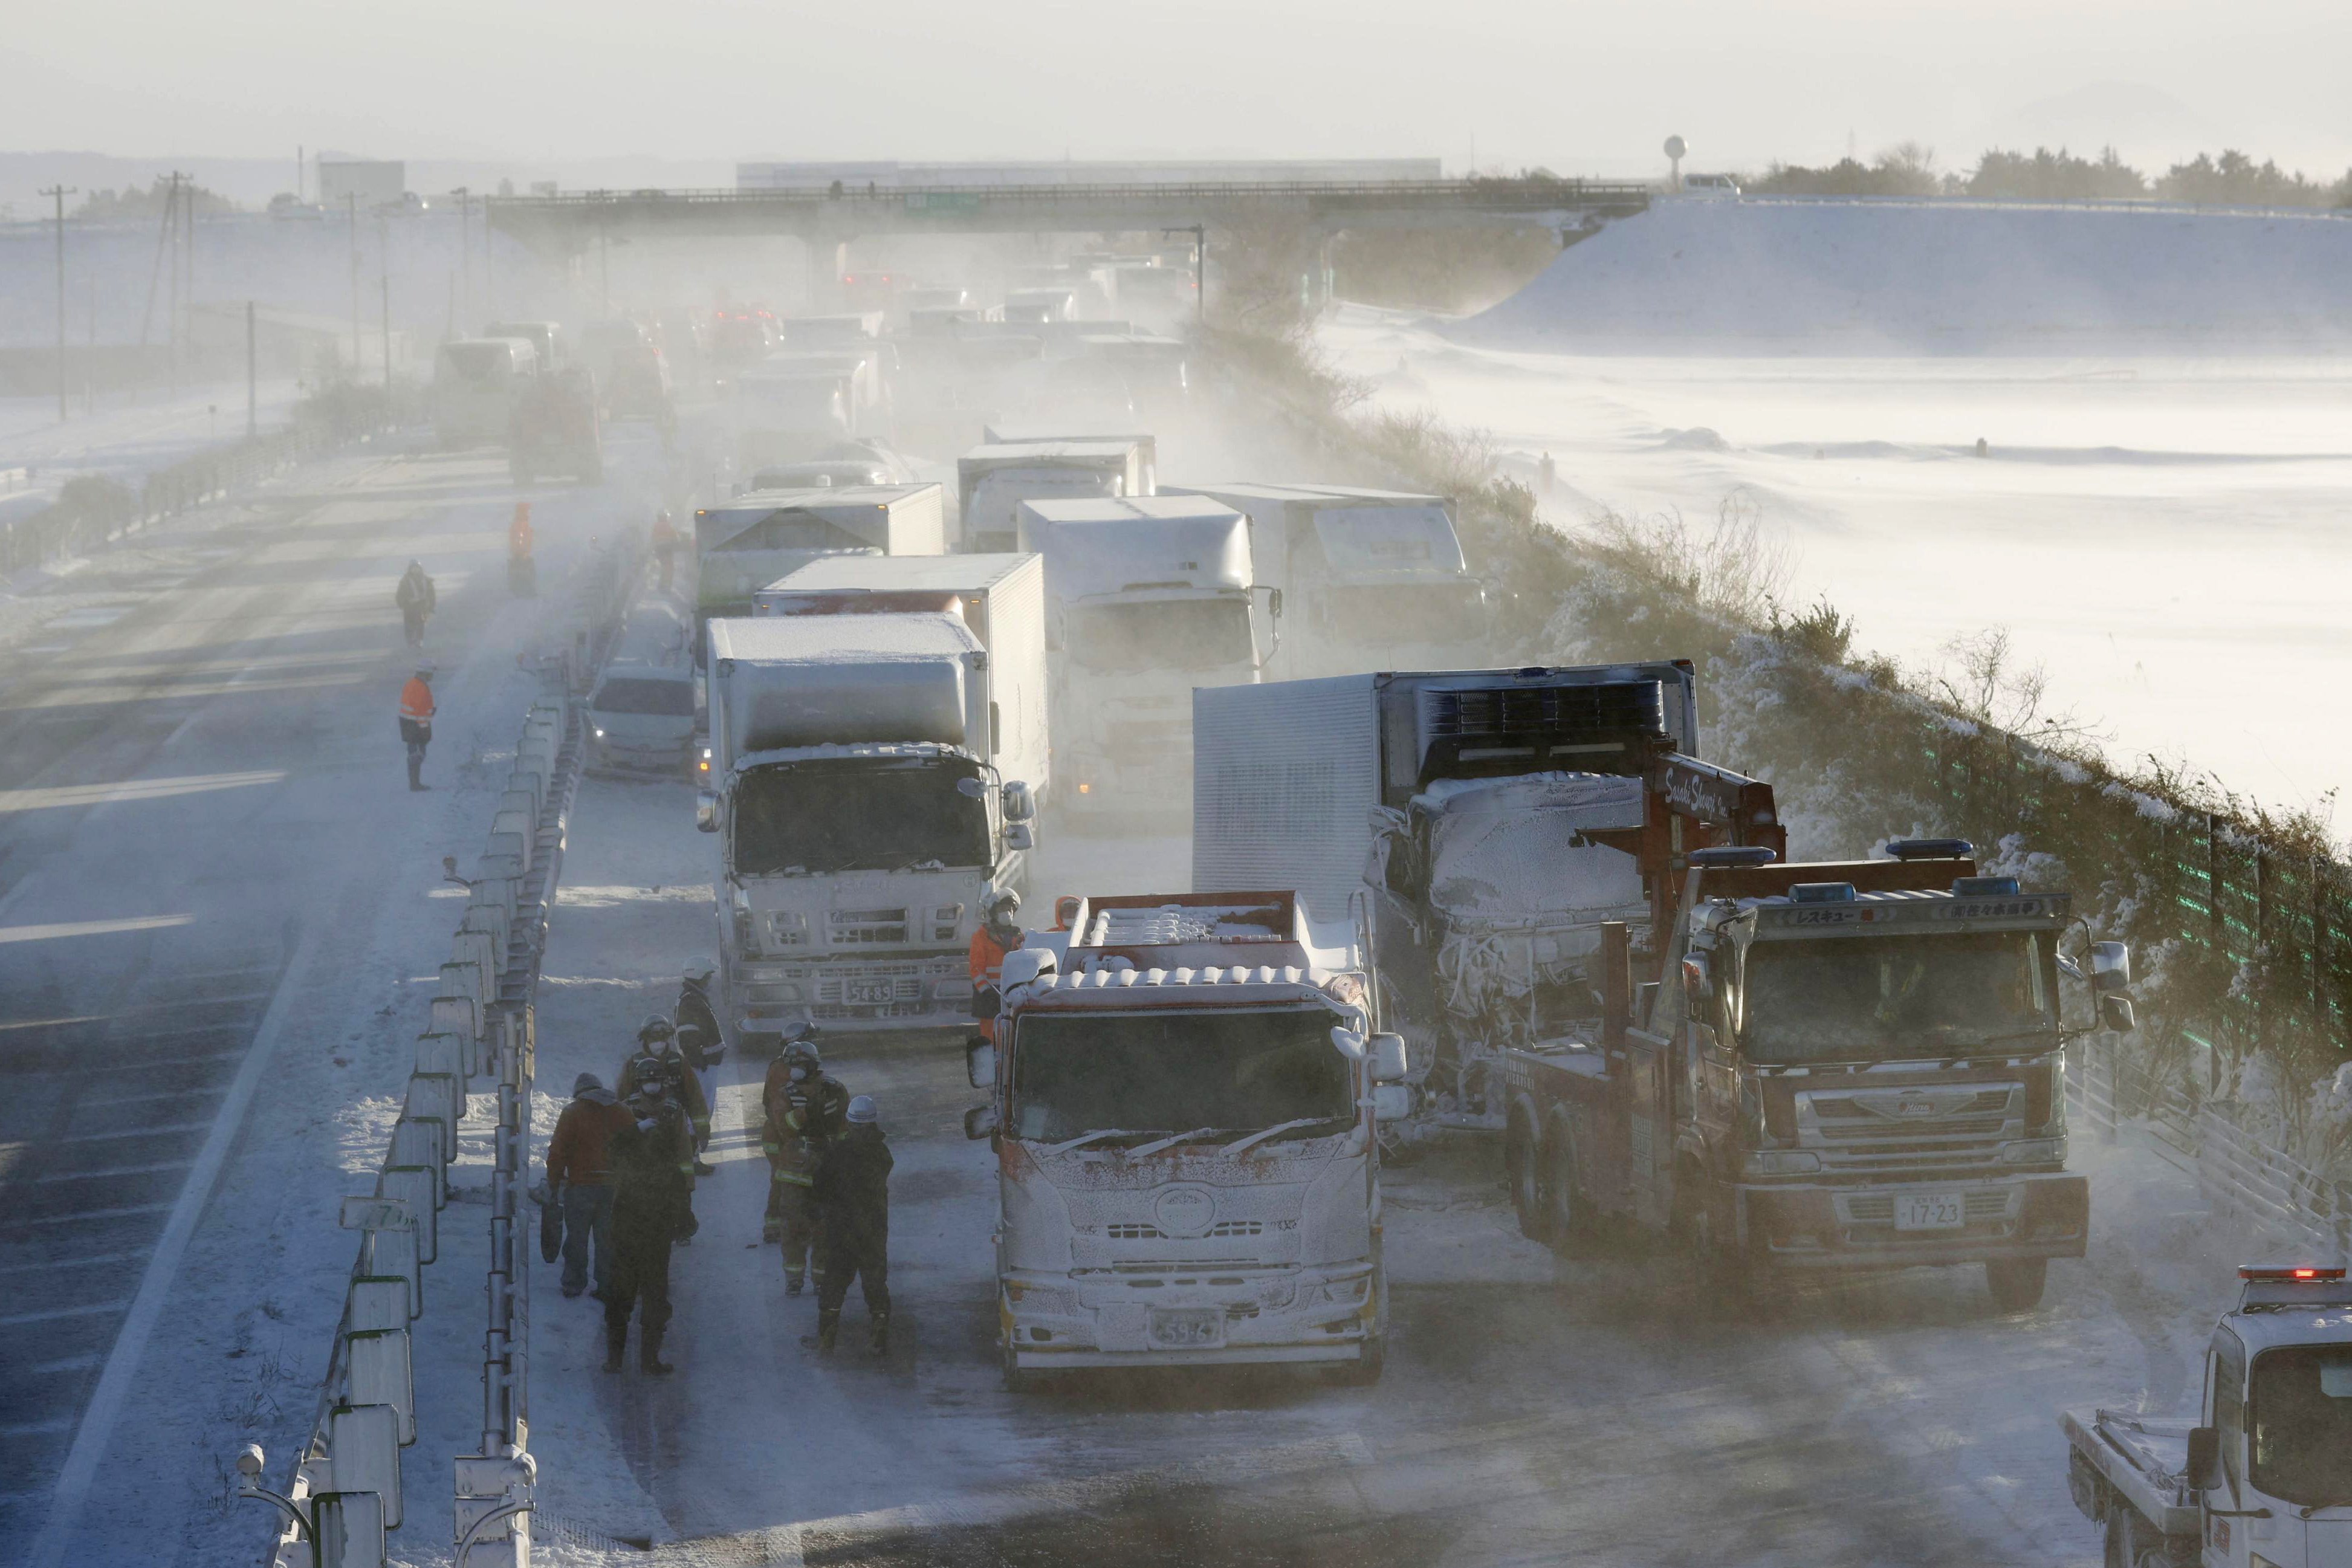 Intense snow storm causes 130 car pile-up on Japanese highway